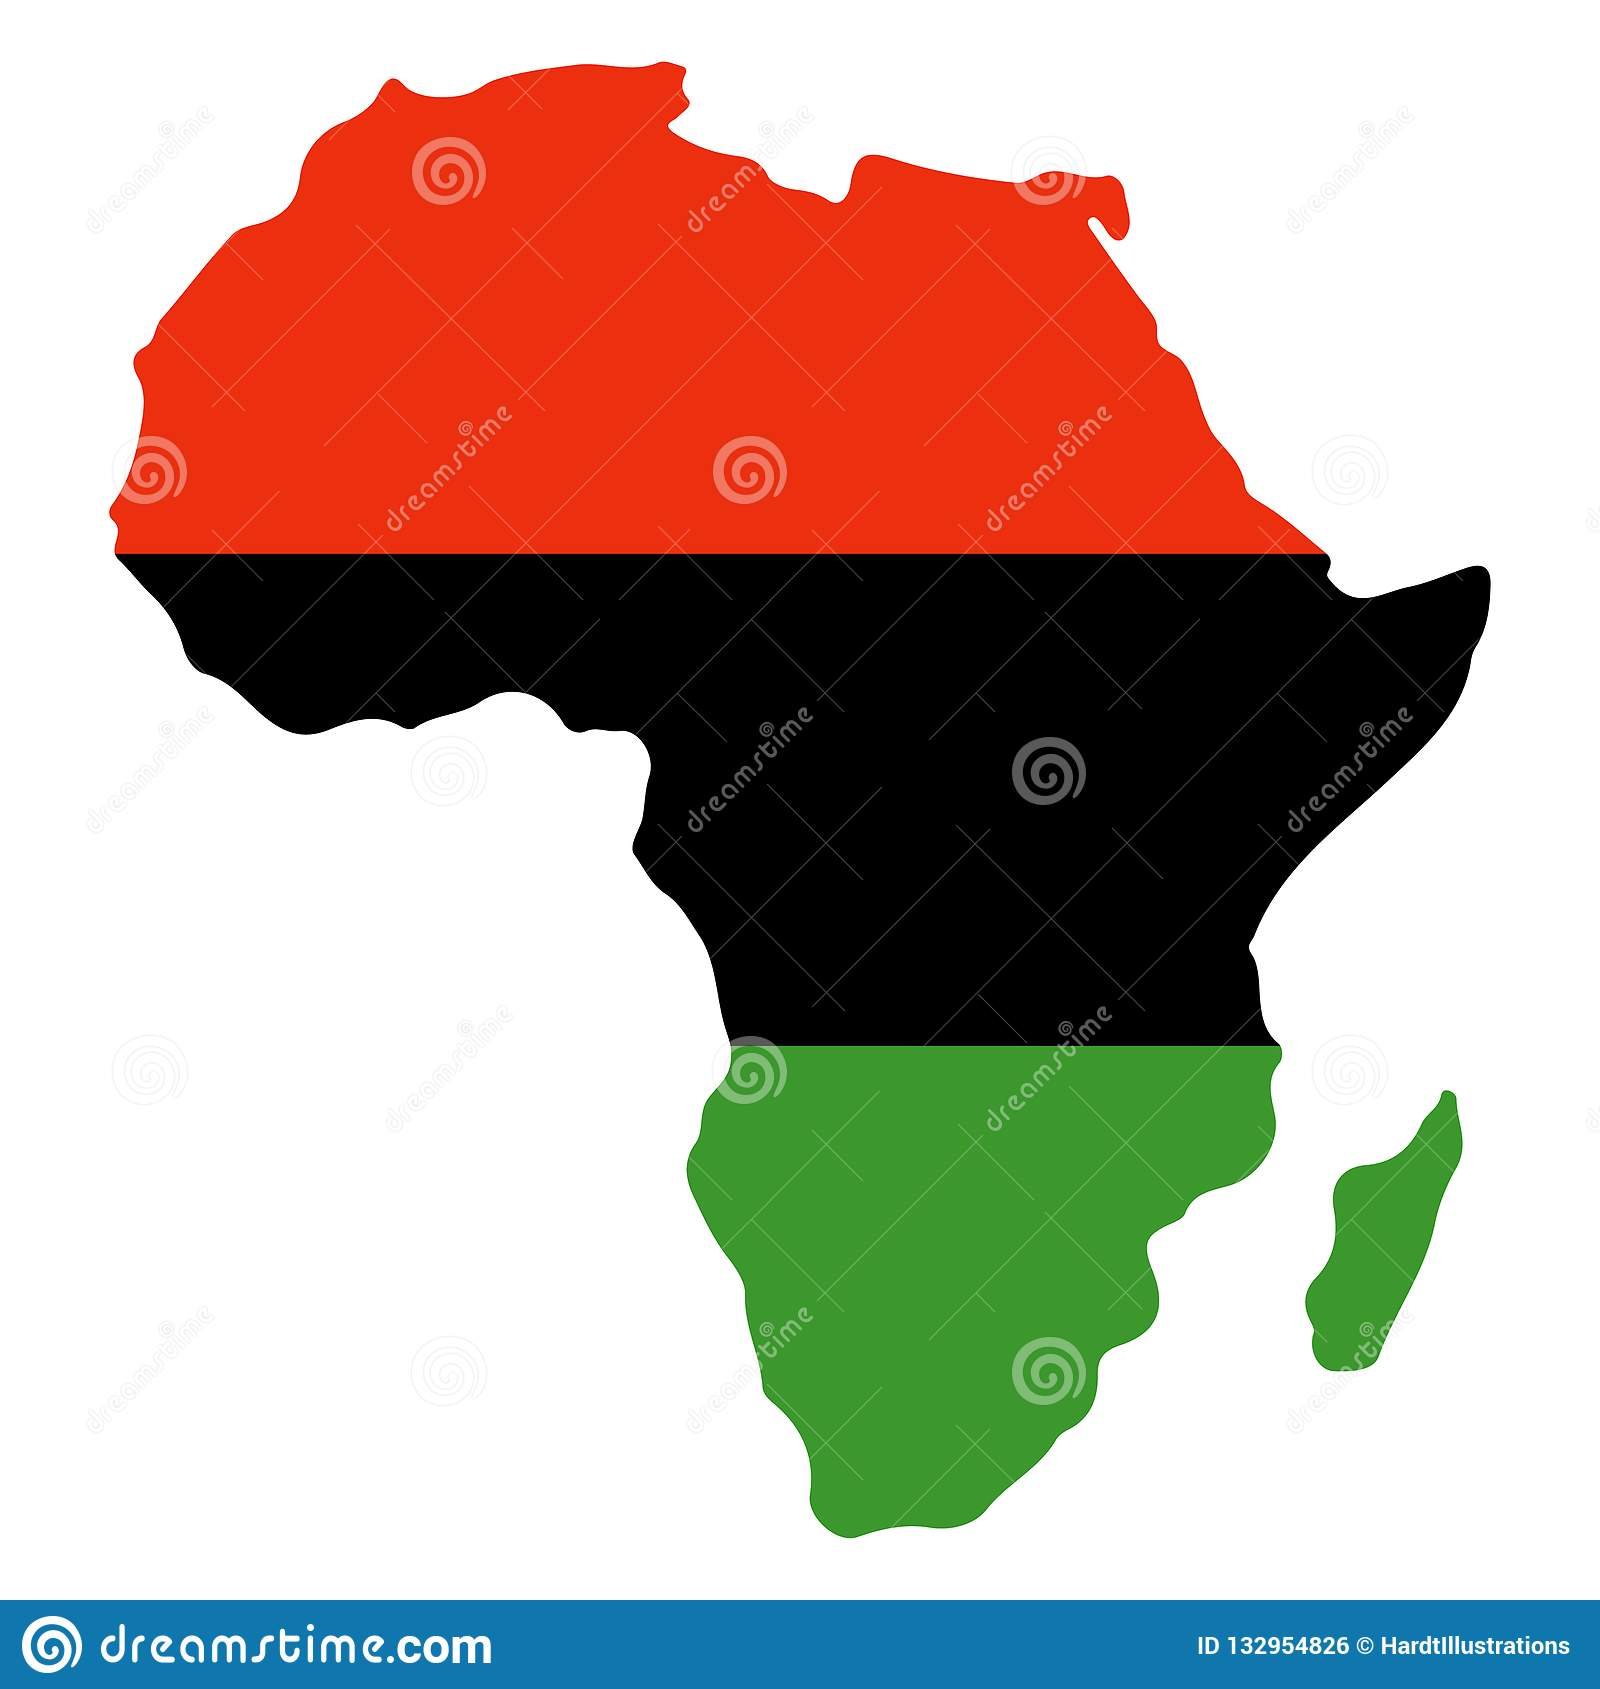 Africa Silhouette In Kwanzaa Colors Stock Vector - Illustration of on map of sociology, map of home, map of thanksgiving, map of valentine's day, map of food, map of africa, map of geography, map of martin luther king, map of dongzhi festival, map of halloween, map of boxing day, map of spring, map of art, map of christmas around the world, map of three kings day, map of hanukkah, map of holi, map of mischief night, map of easter, map of holiday,